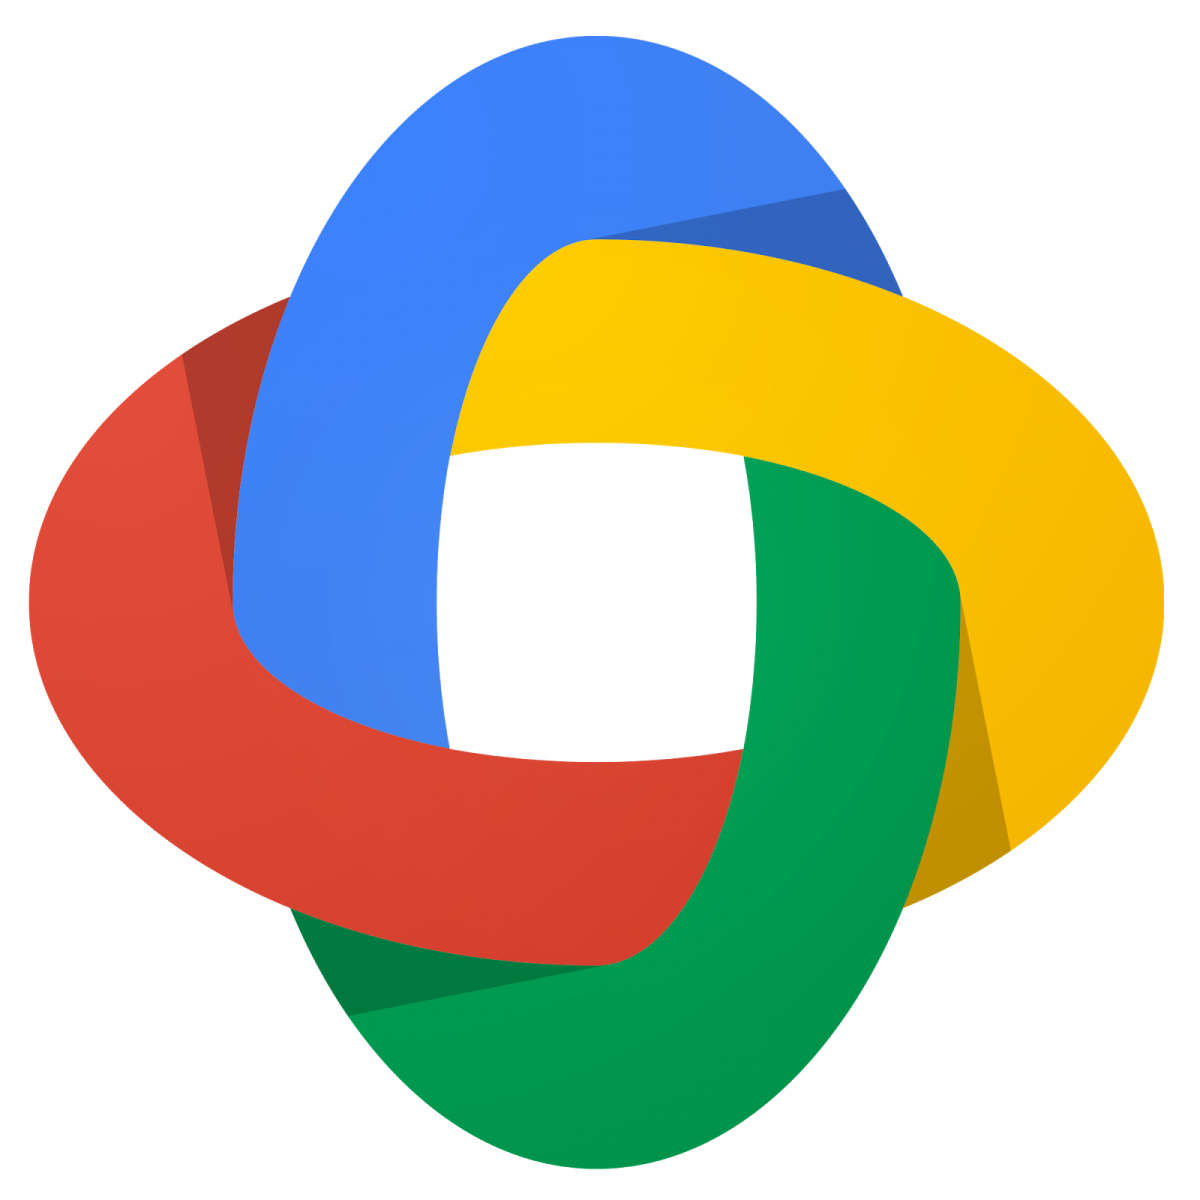 Google Project: Research at Google